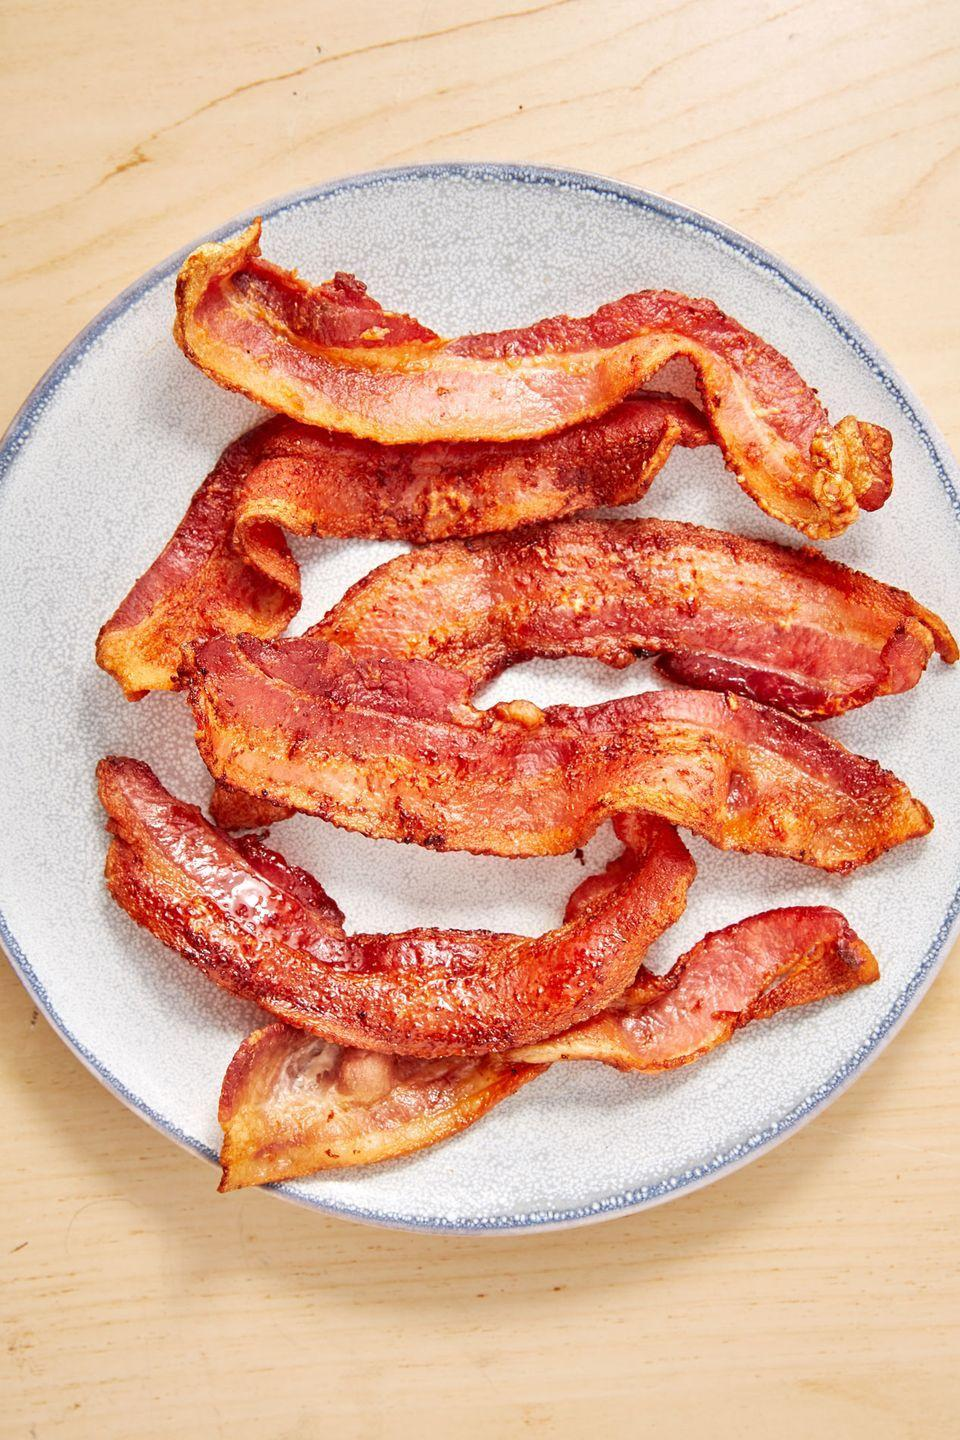 """<p>Can you smell it from here?</p><p>Get the recipe from <a href=""""https://www.delish.com/cooking/recipe-ideas/a28141278/air-fryer-bacon-recipe/"""" rel=""""nofollow noopener"""" target=""""_blank"""" data-ylk=""""slk:Delish"""" class=""""link rapid-noclick-resp"""">Delish</a>.</p>"""